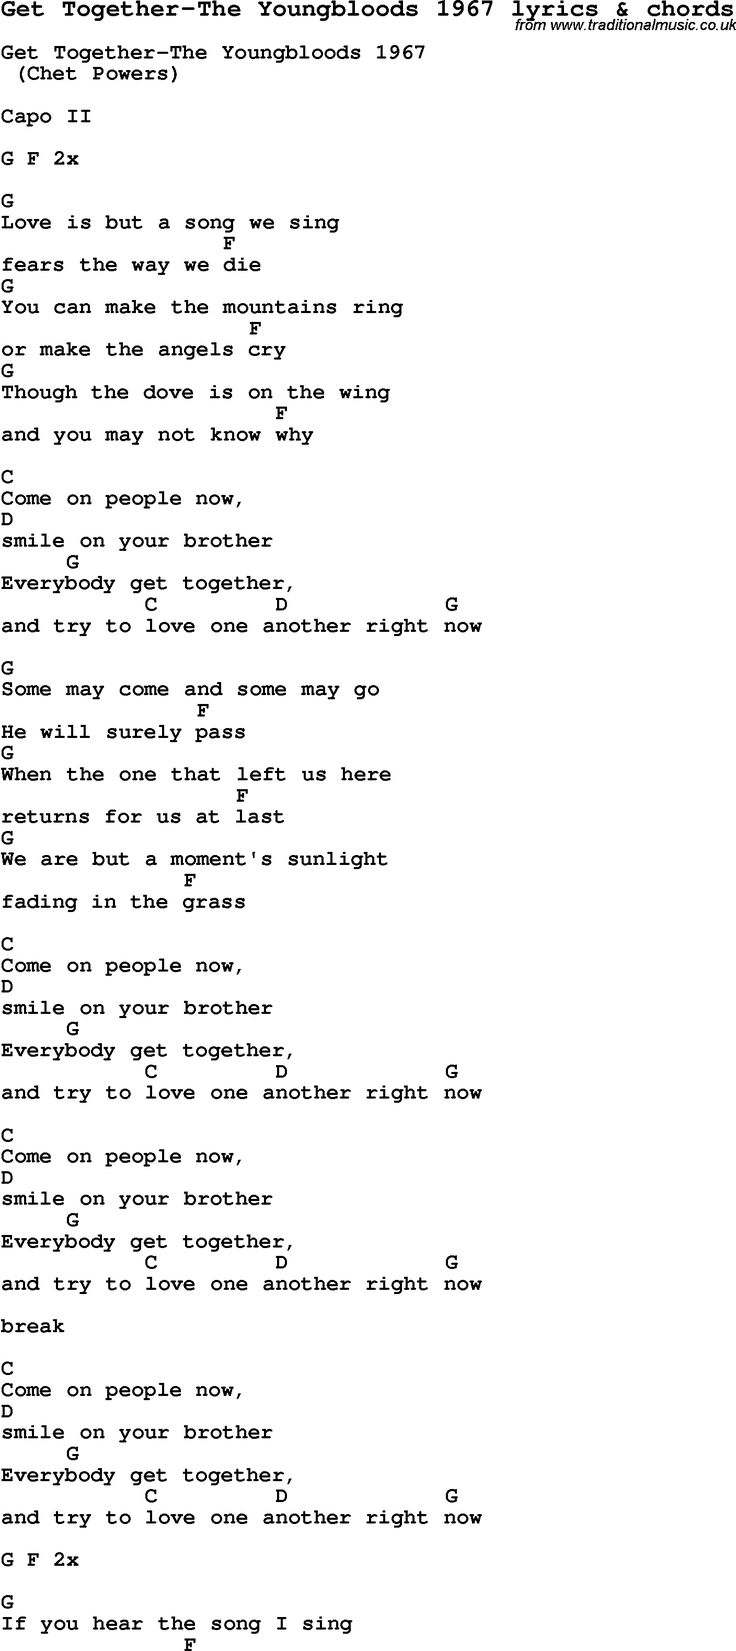 252 best music images on pinterest lyrics music and couple love song lyrics for get together the youngbloods 1967 with chords for ukulele guitar banjo etc hexwebz Images